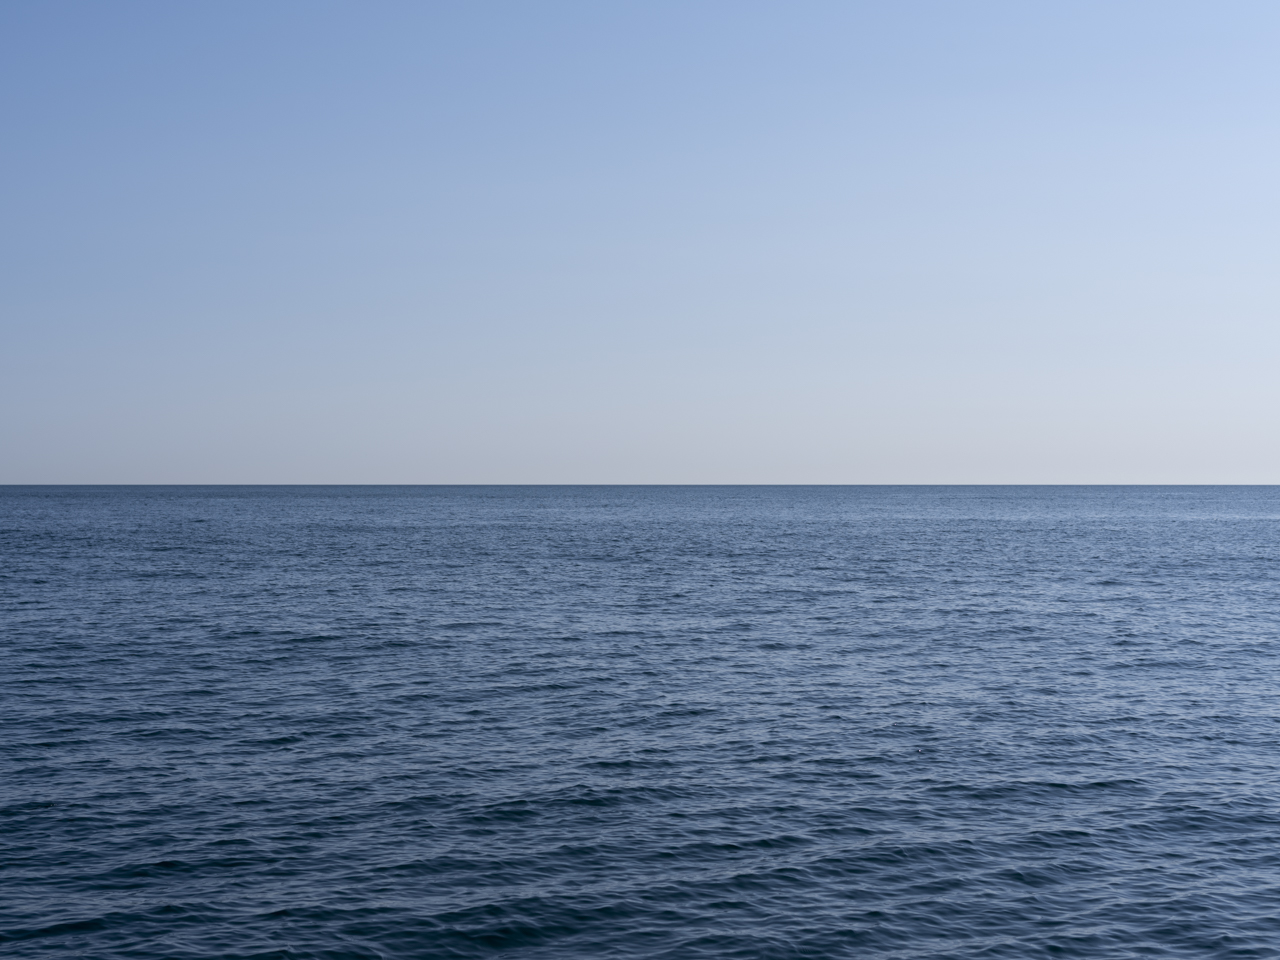 blue clear sky and slight waves on Lake Michigan